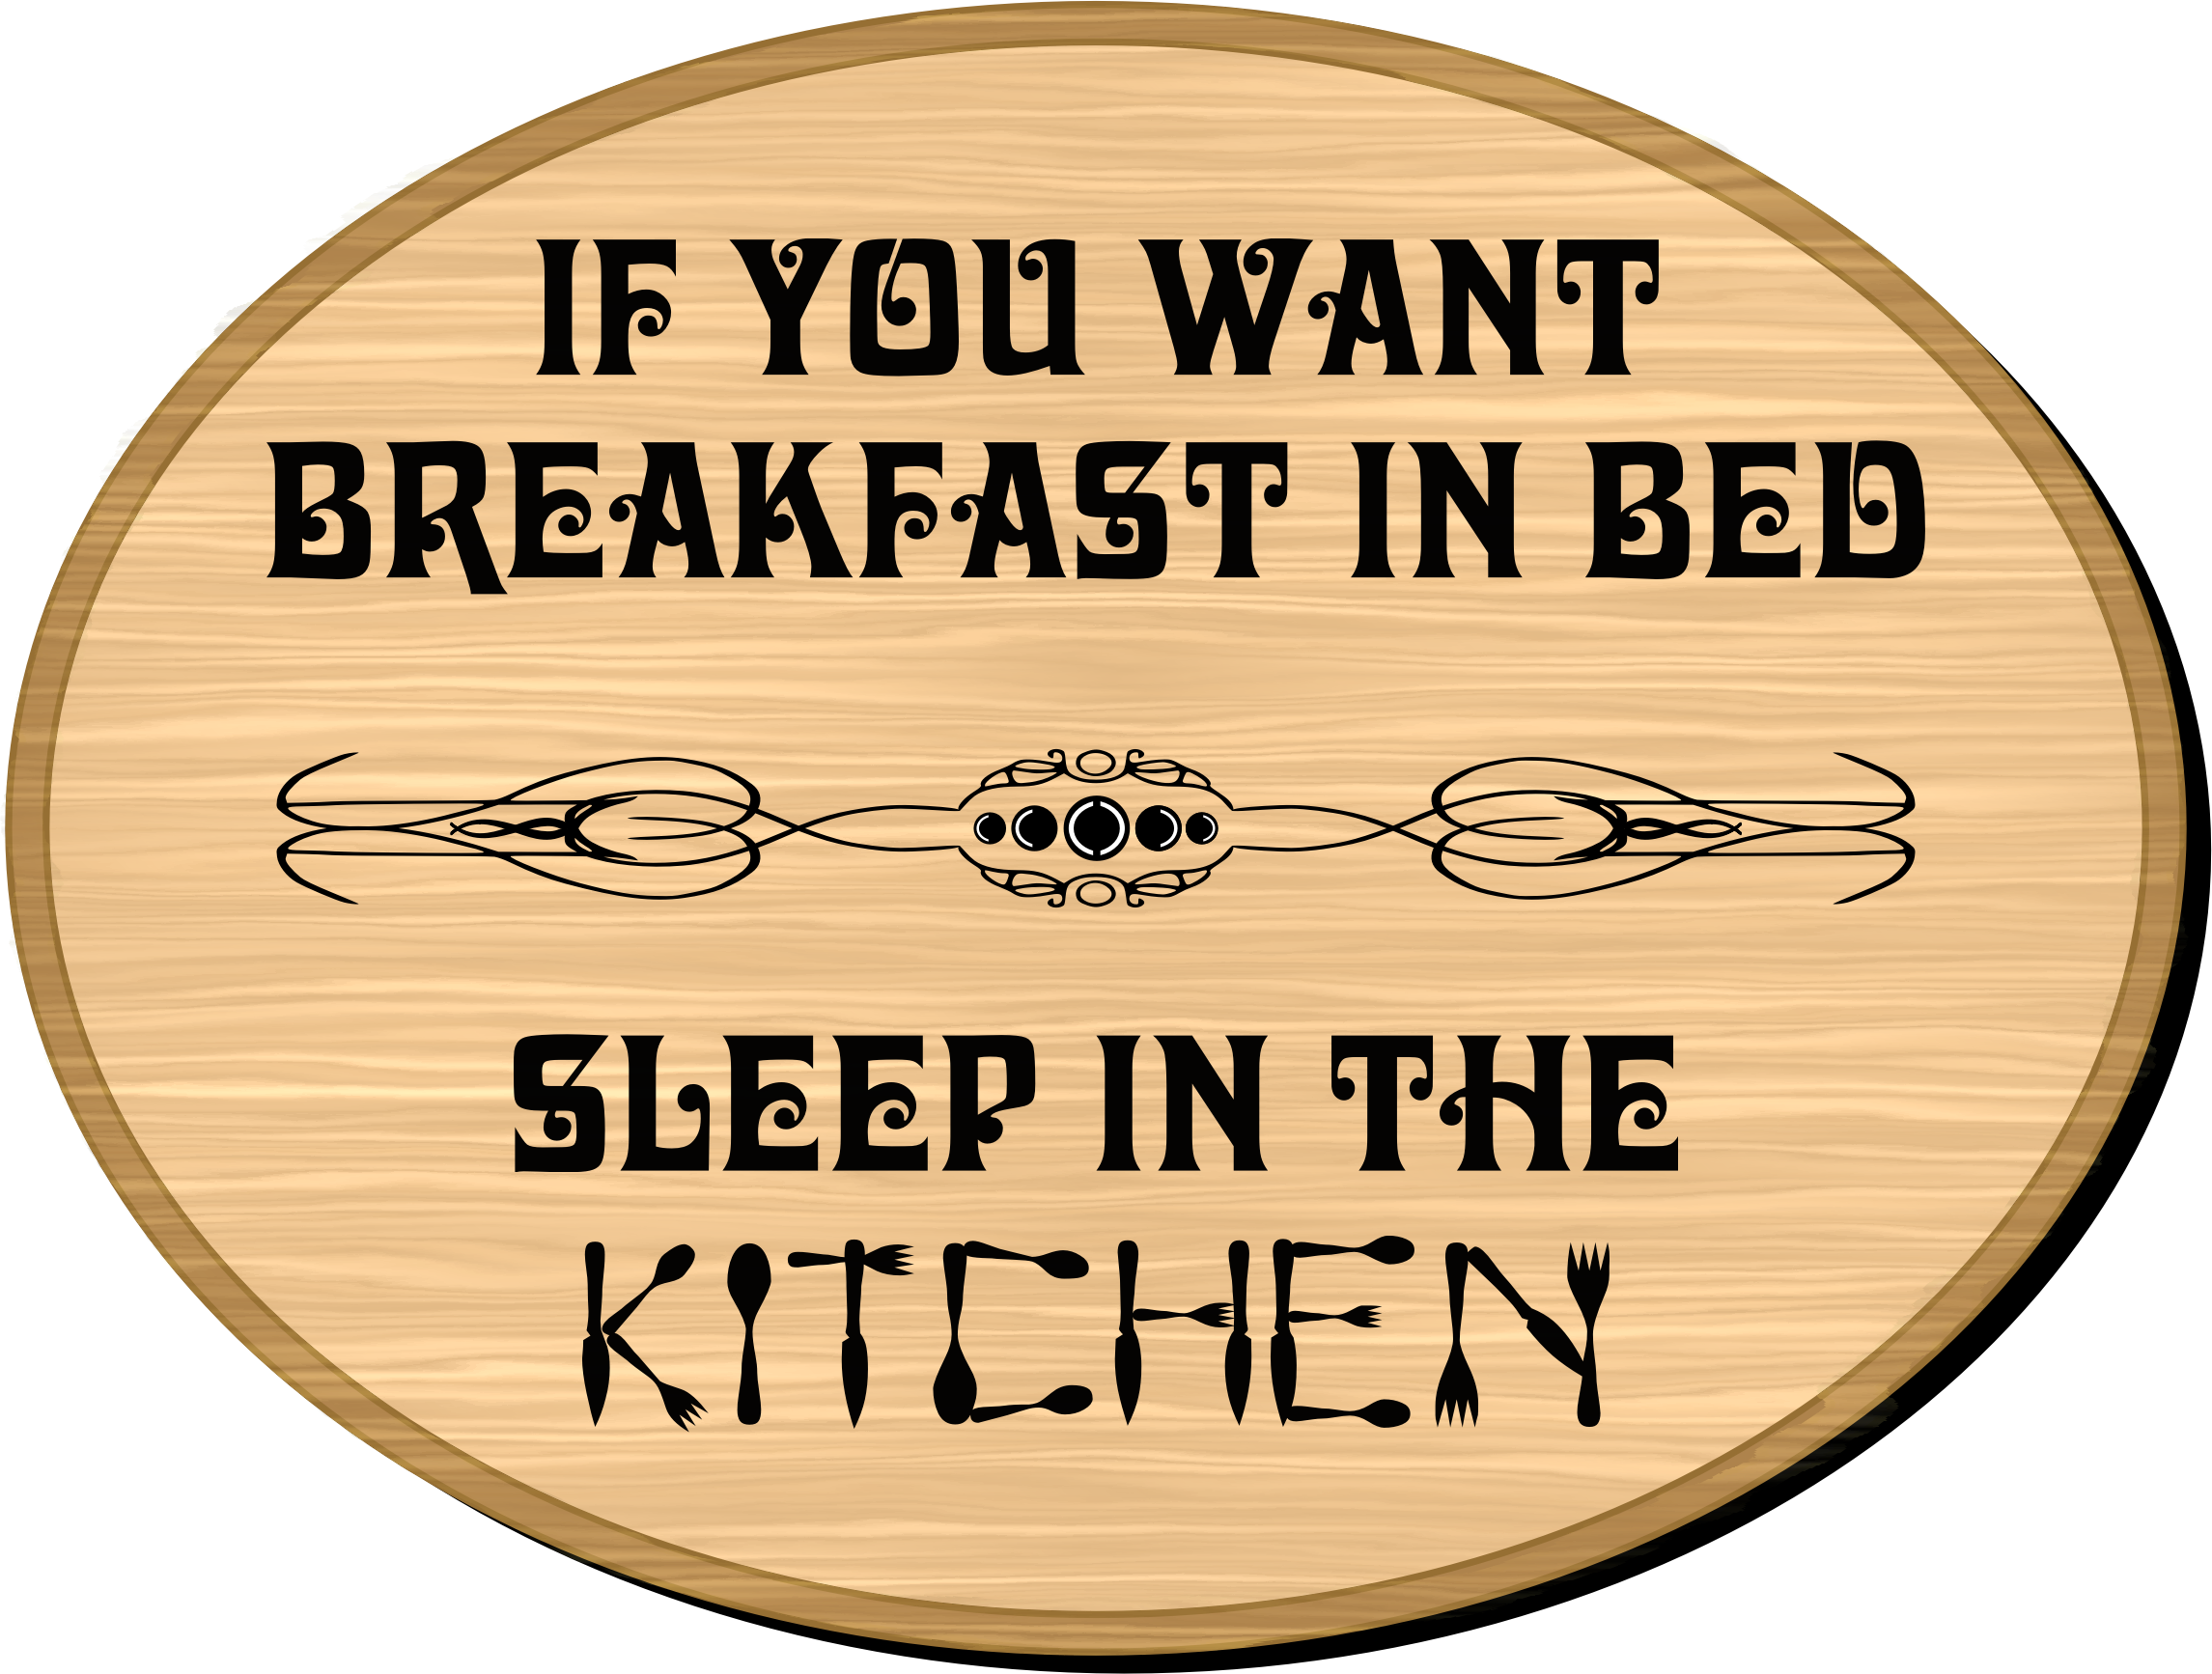 In bed big image. Breakfast clipart text